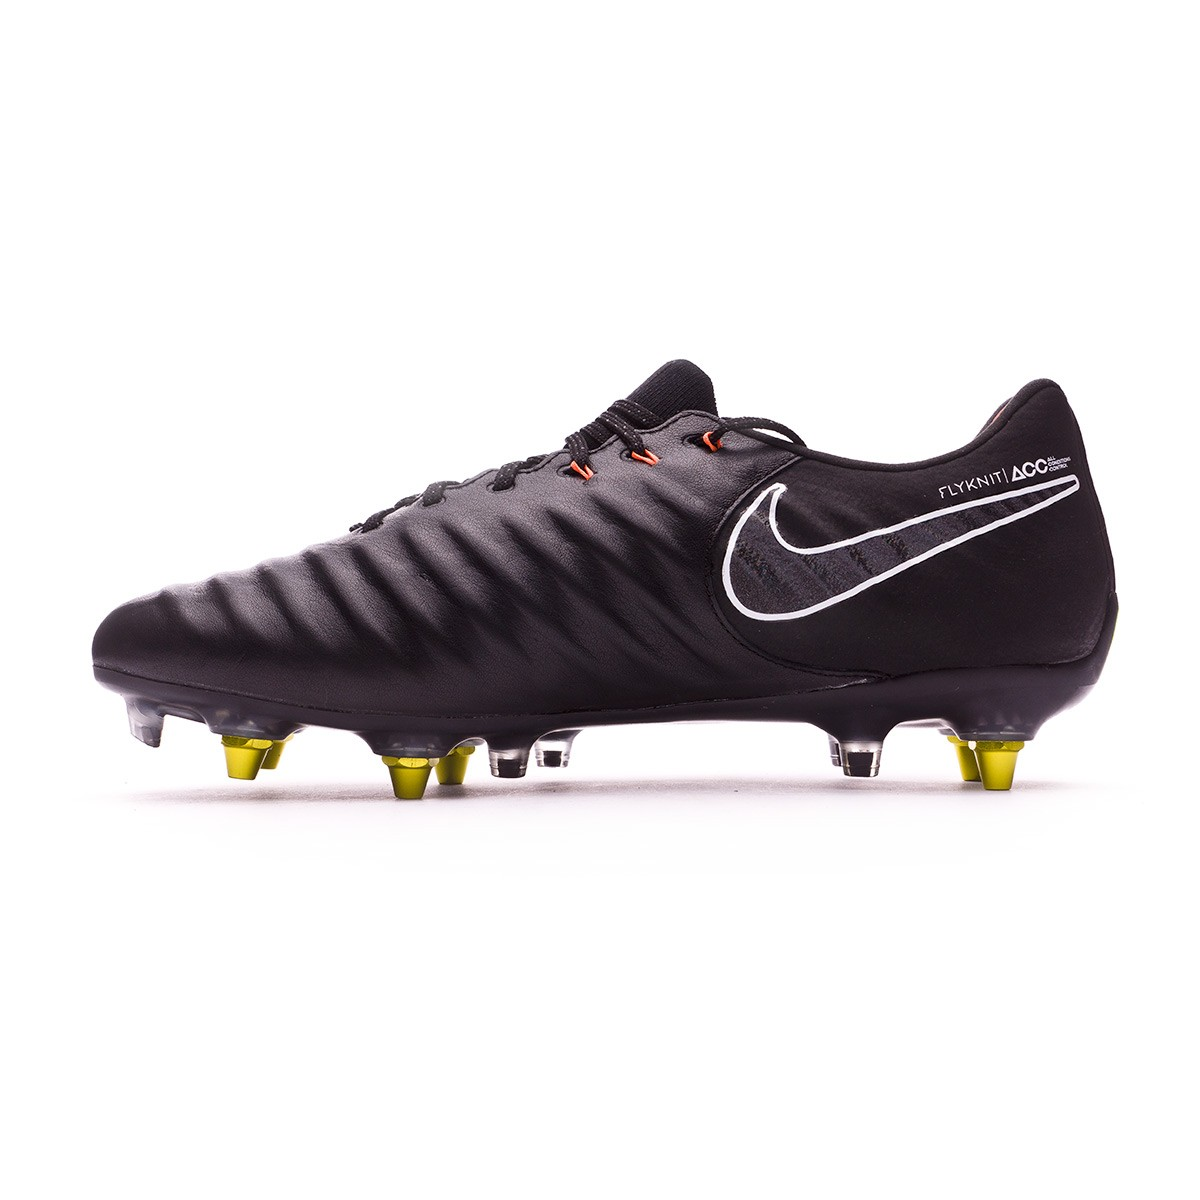 f2d38916f Football Boots Nike Tiempo Legend VII Elite SG-Pro Black-Total orange-White  - Football store Fútbol Emotion